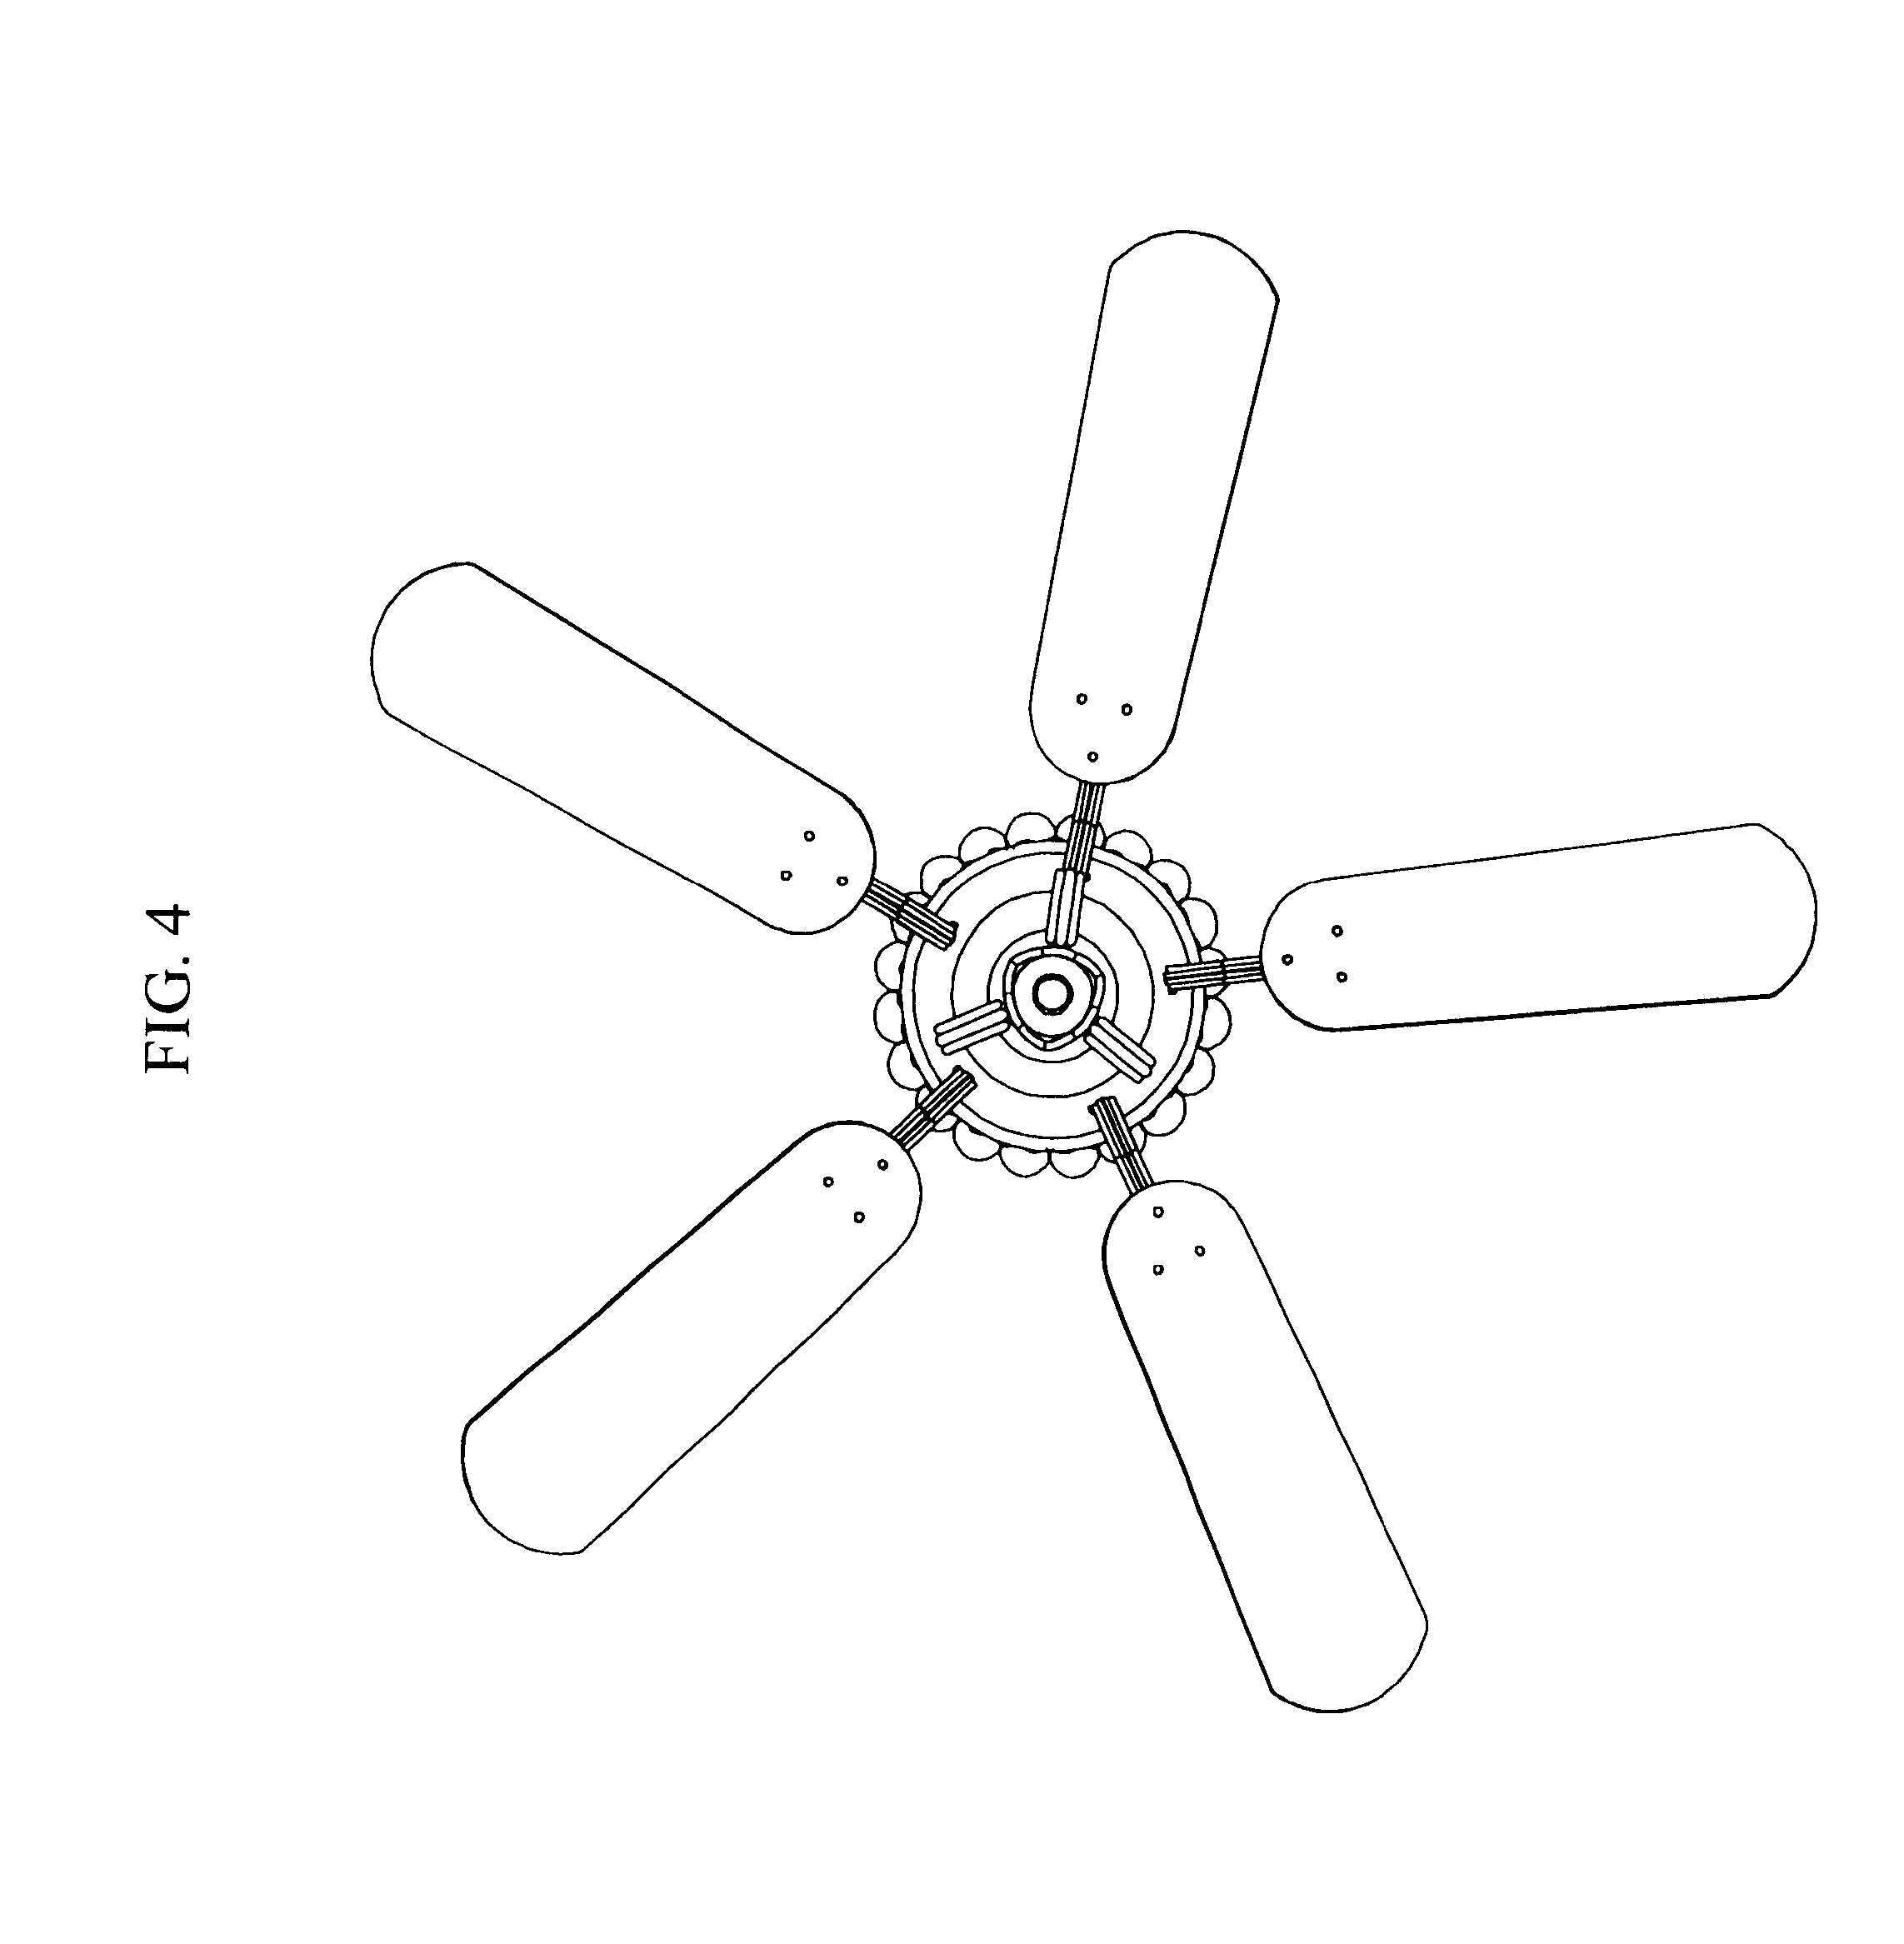 Ceiling Fan Drawing at PaintingValley.com.